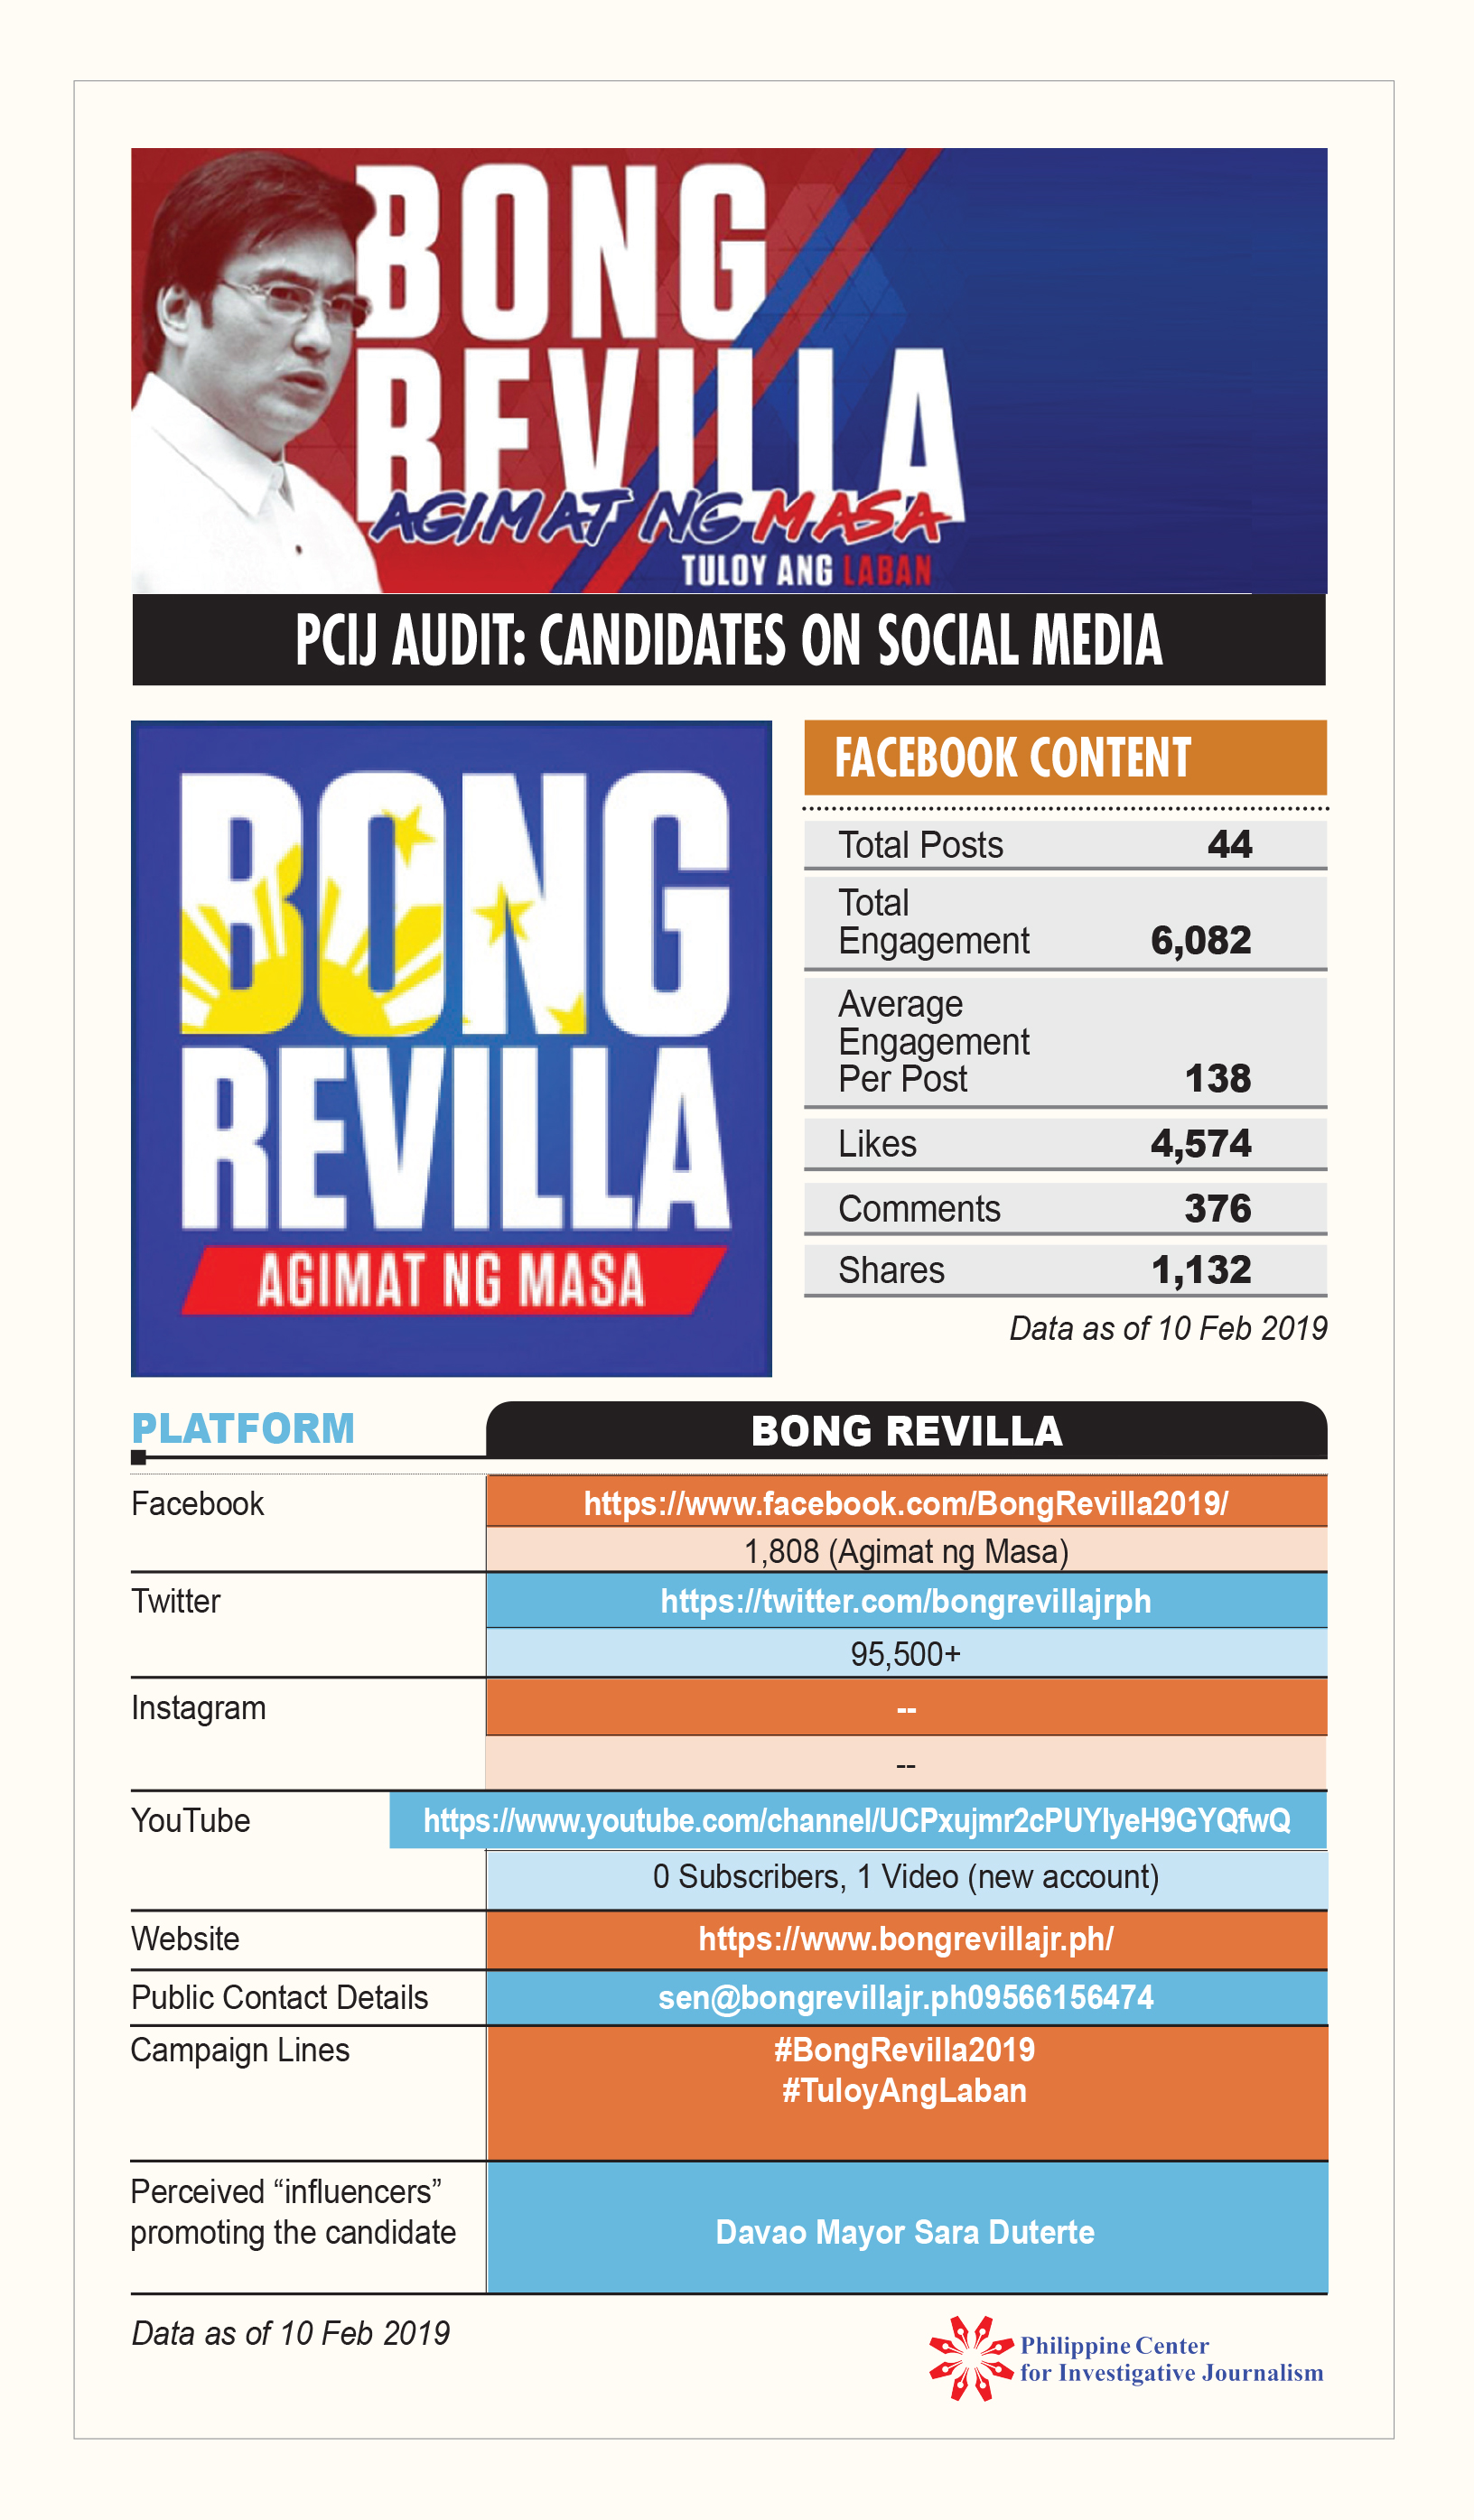 PCIJ Social Audit. Bong Revilla, 10 feb 19